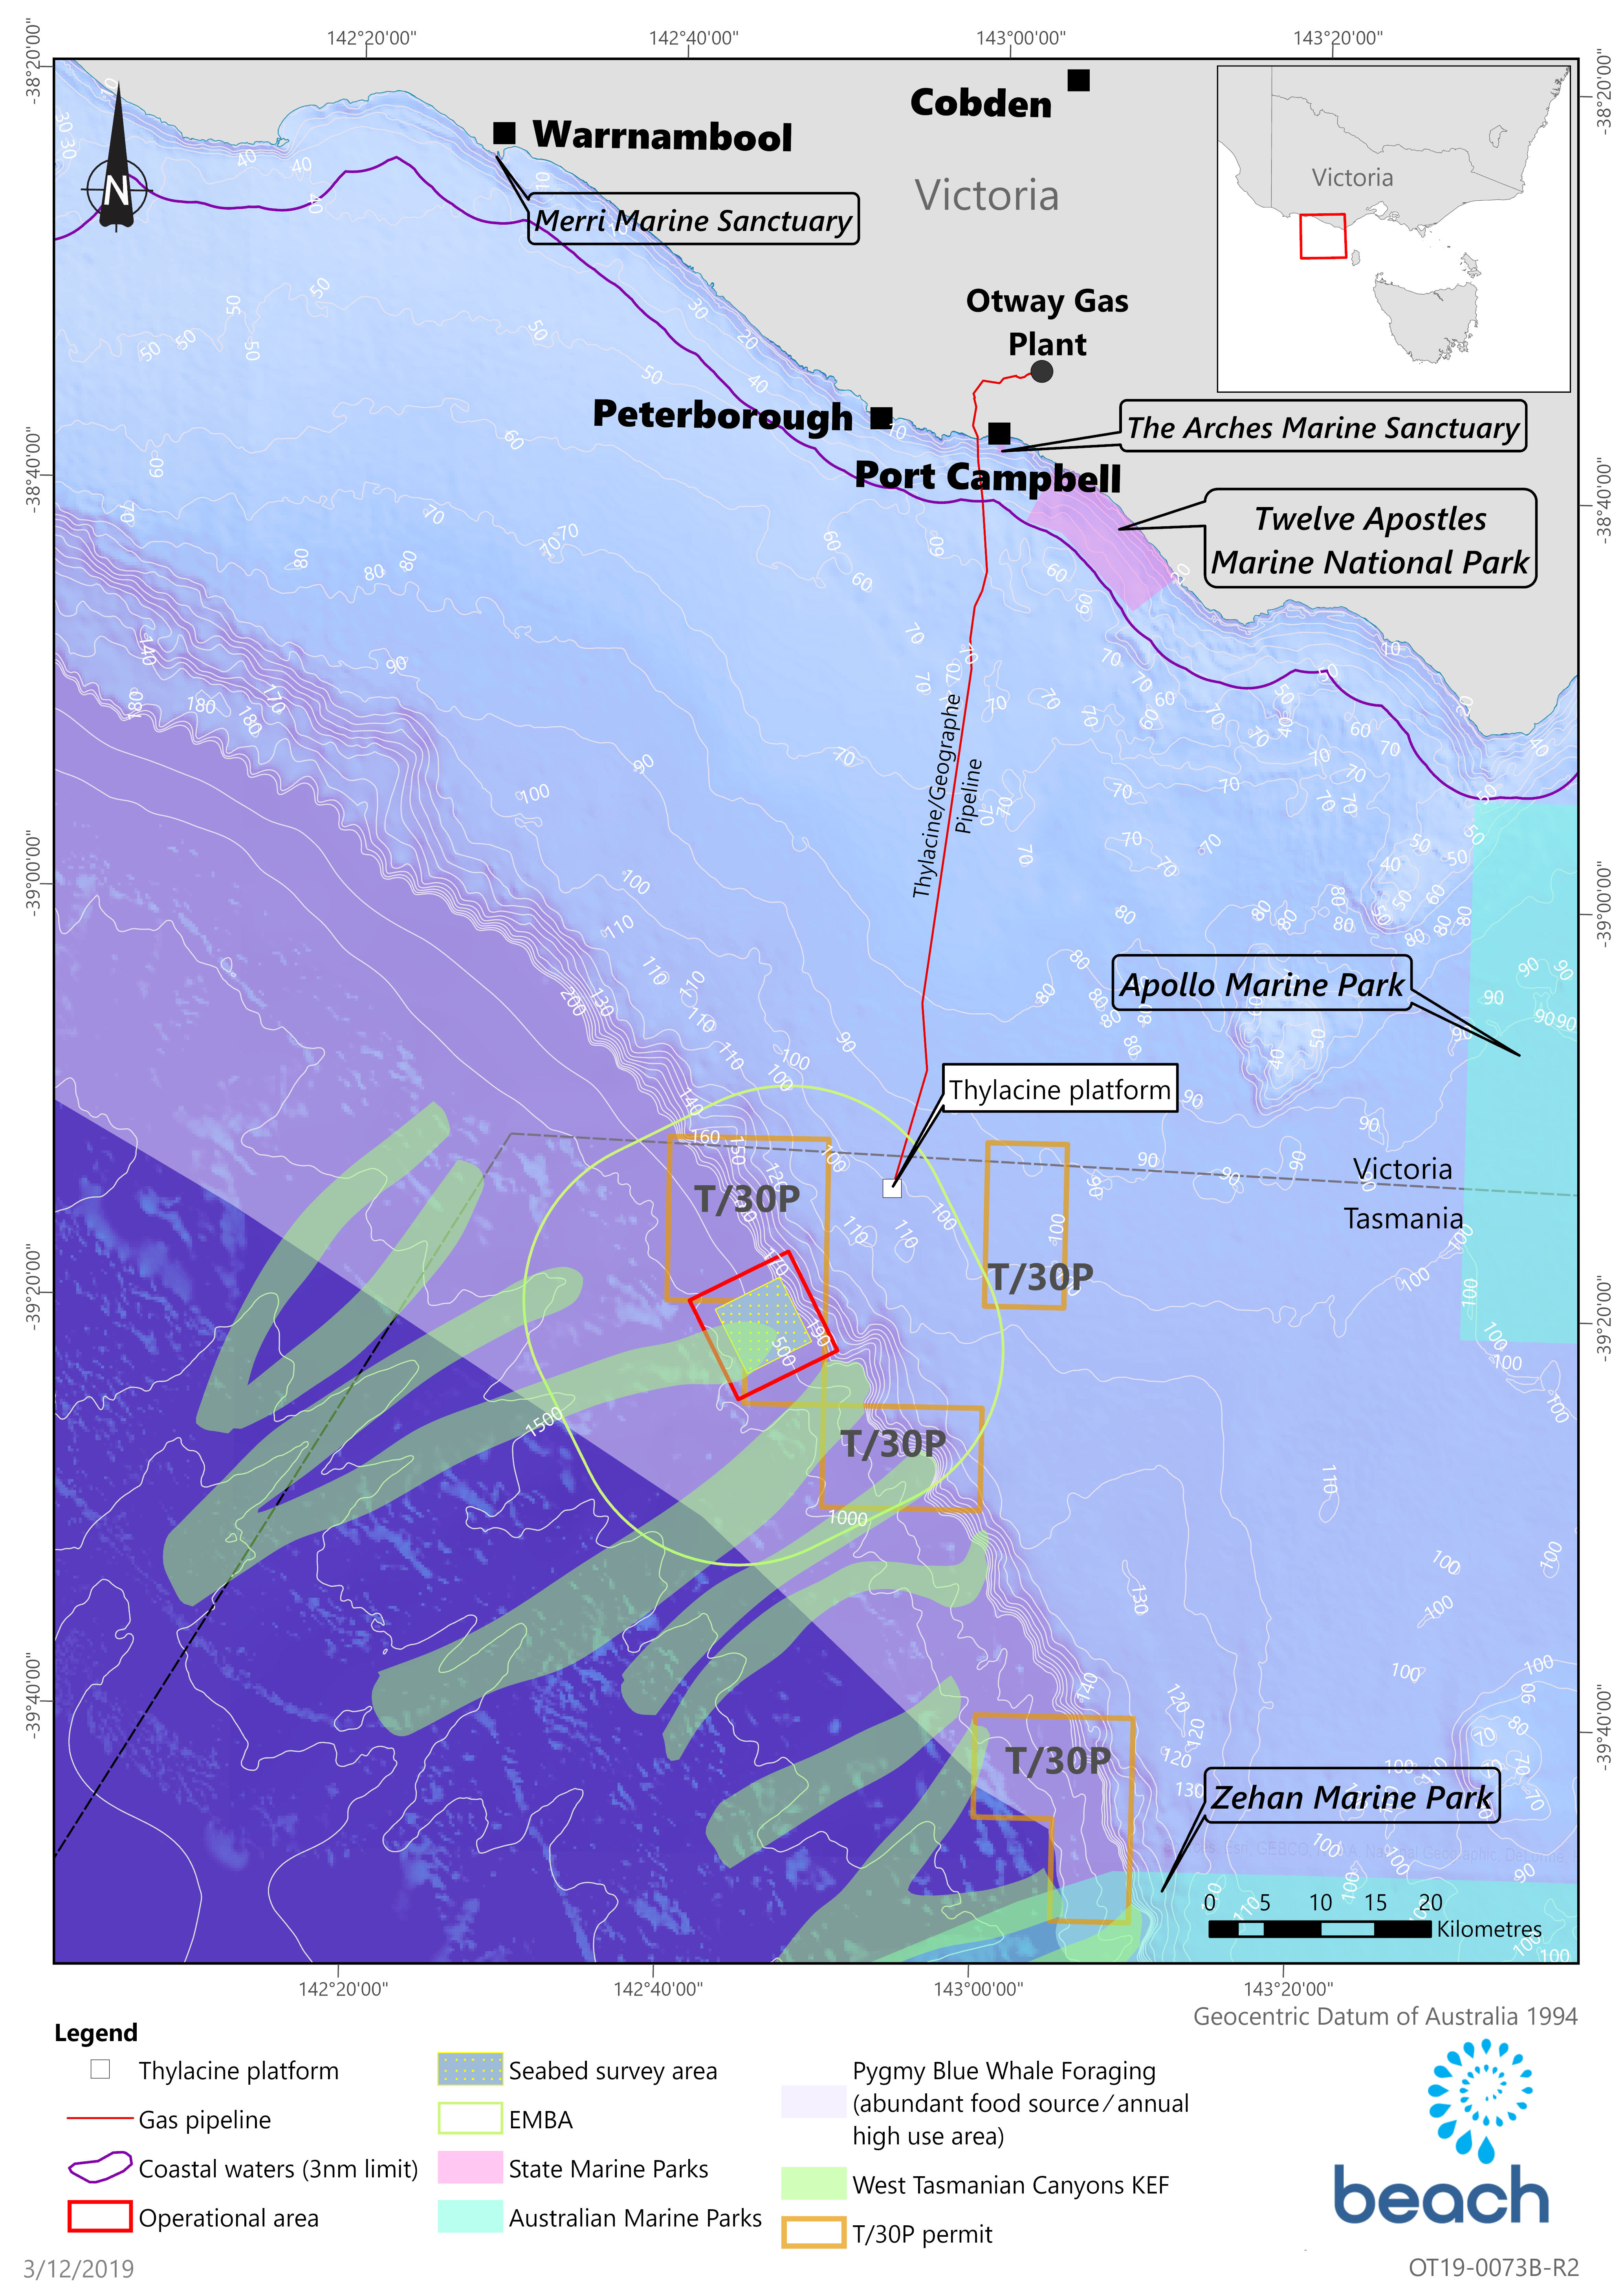 Location map - Activity: T/30P Geophysical and Geotechnical Seabed Survey (refer to description)